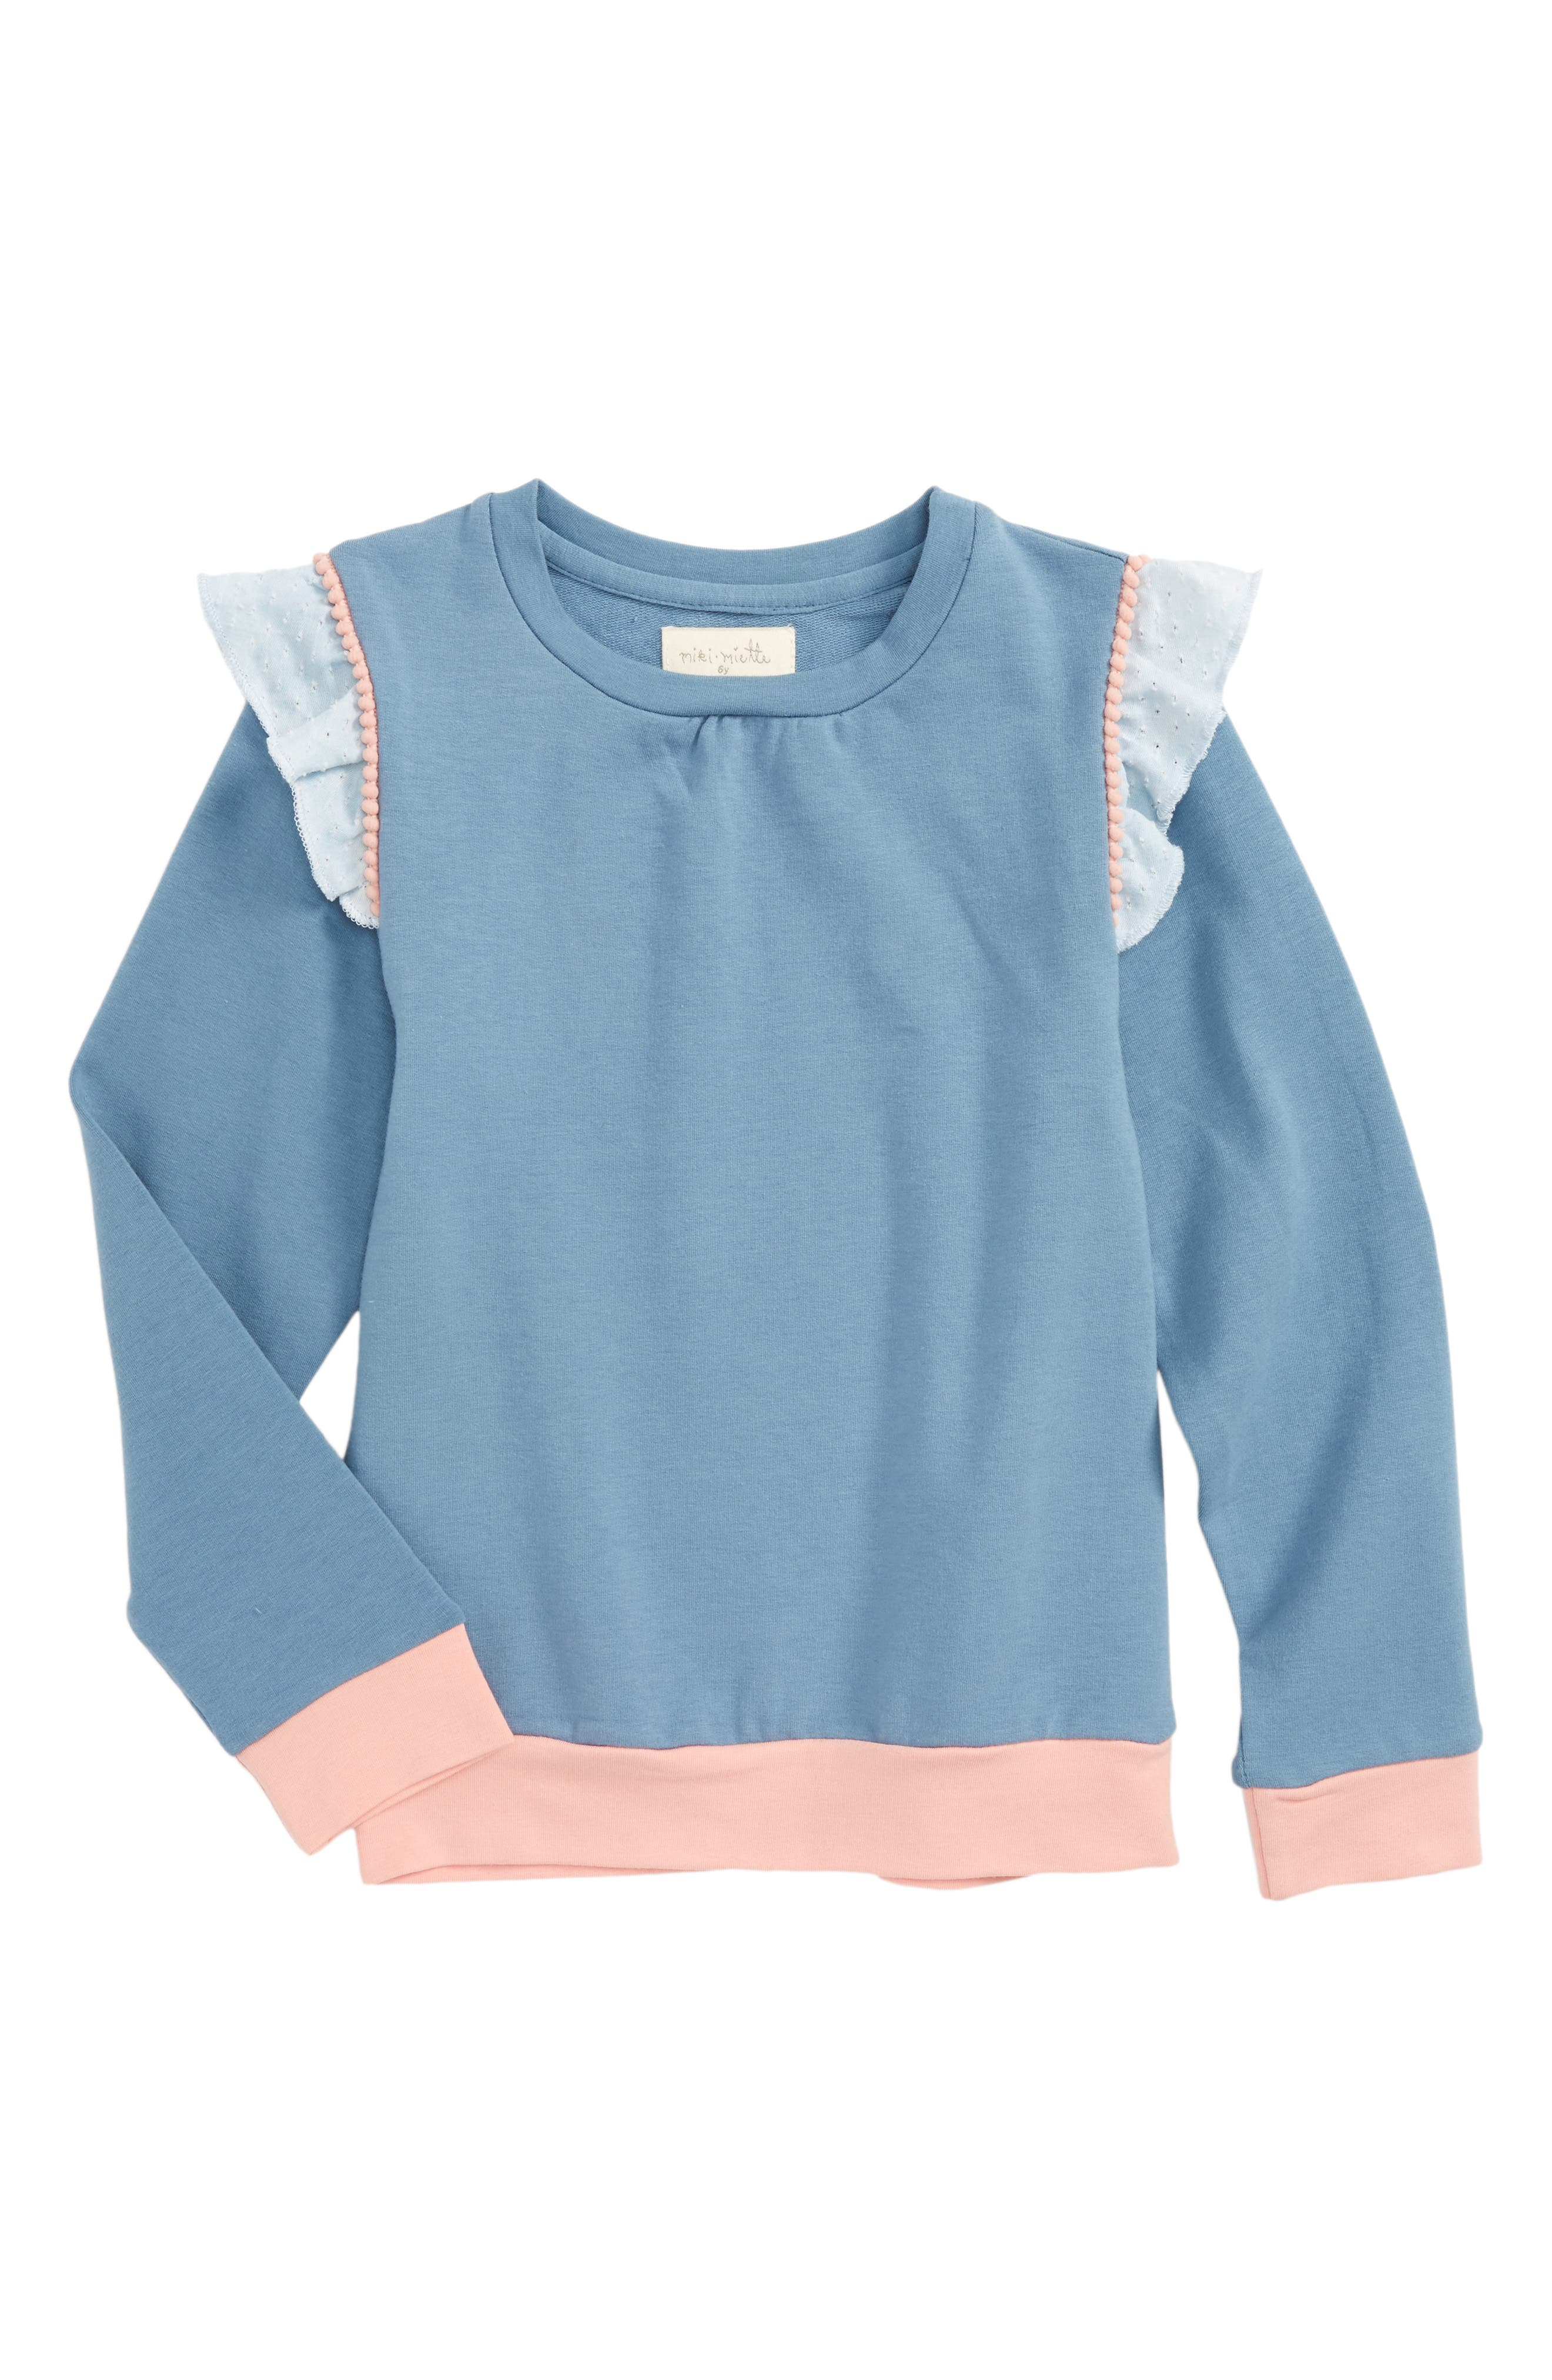 Main Image - Miki Miette Cora Top (Toddler Girls & Little Girls)